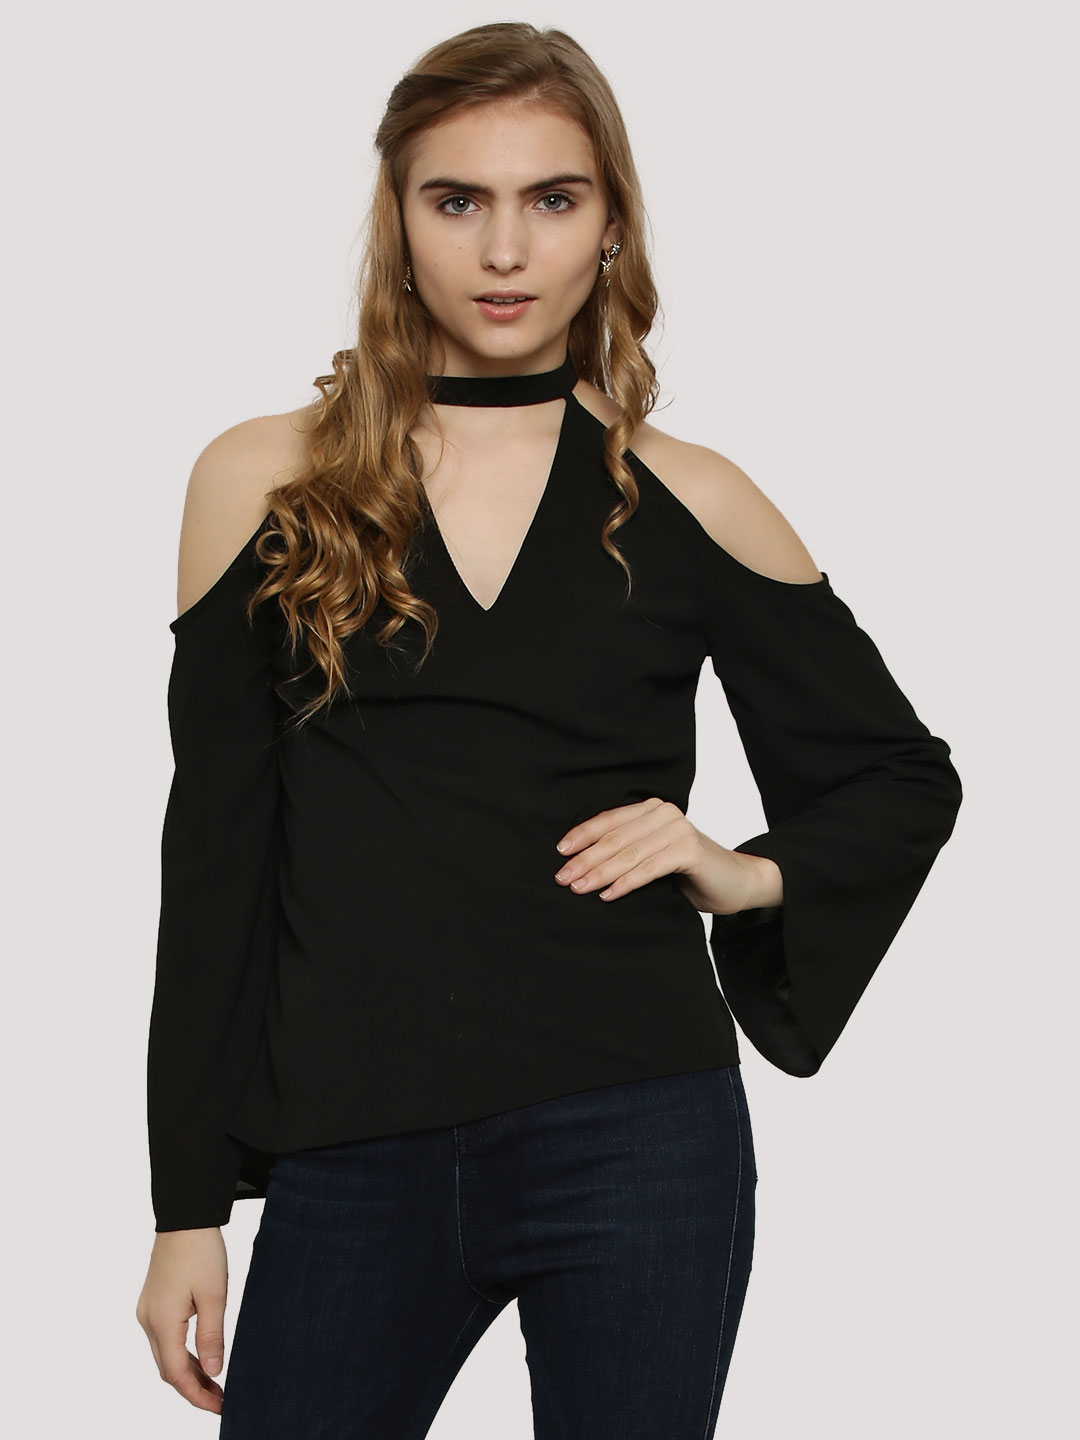 Oliv Black Choker Top With Bell Sleeves 1